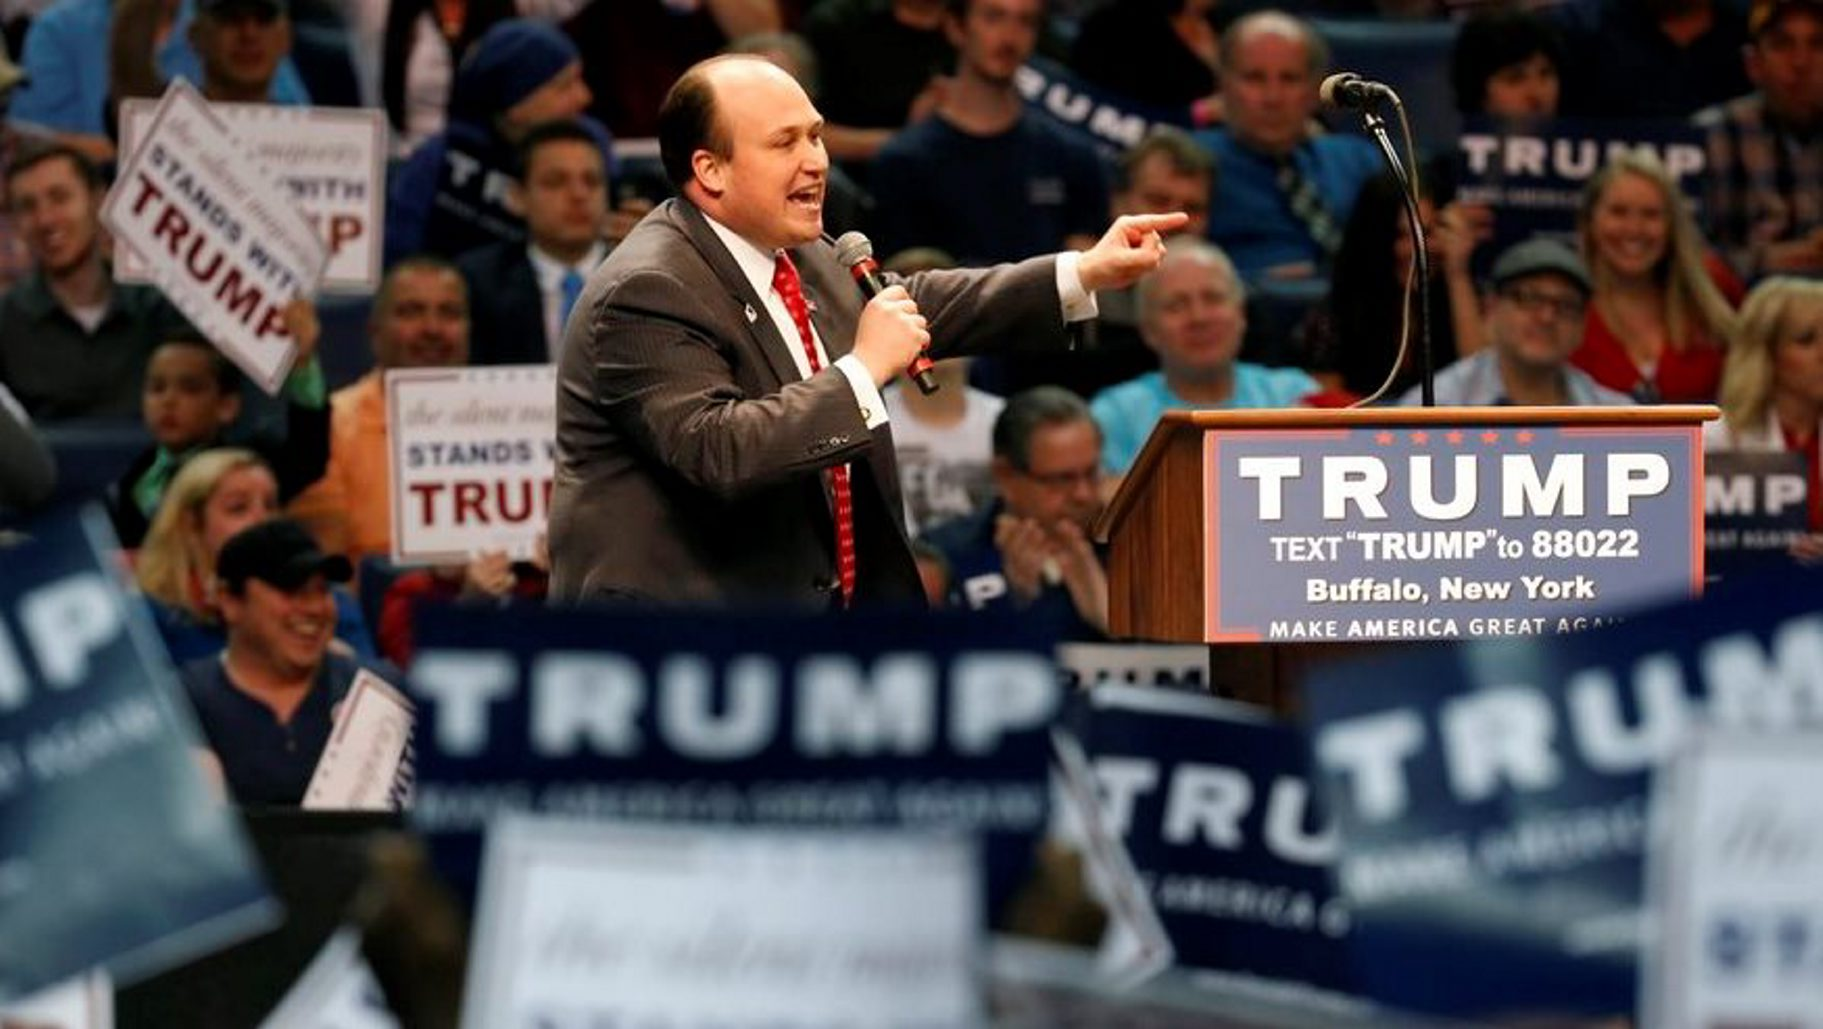 Erie County Republican Chairman Nick Langworthy speaks at a rally for Donald Trump at the First Niagara Center on Monday, April 18, 2016. (Harry Scull Jr./Buffalo News)